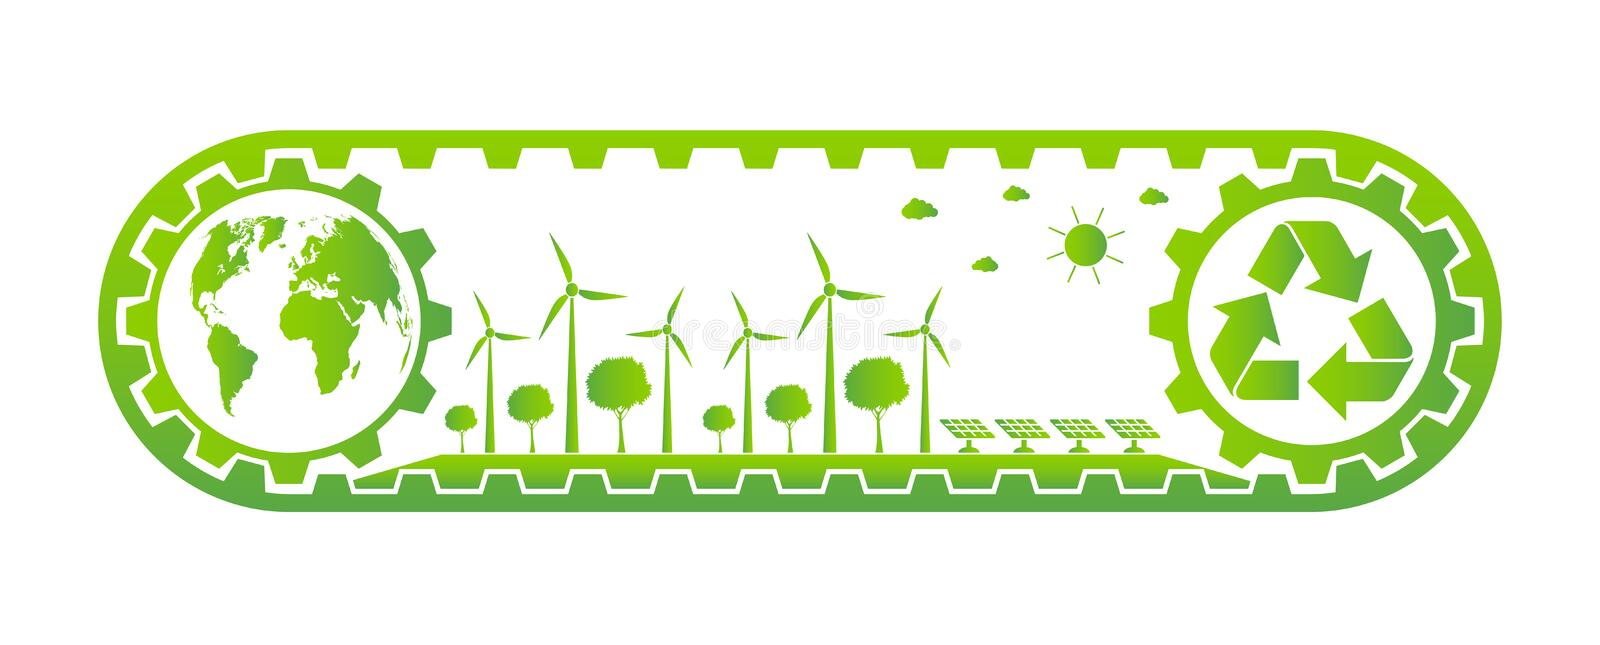 Ecology Saving Gear Concept And Environmental Sustainable Energy Development,Vector illustration. Green, nature, tree, earth, world, background, natural, plant stock illustration